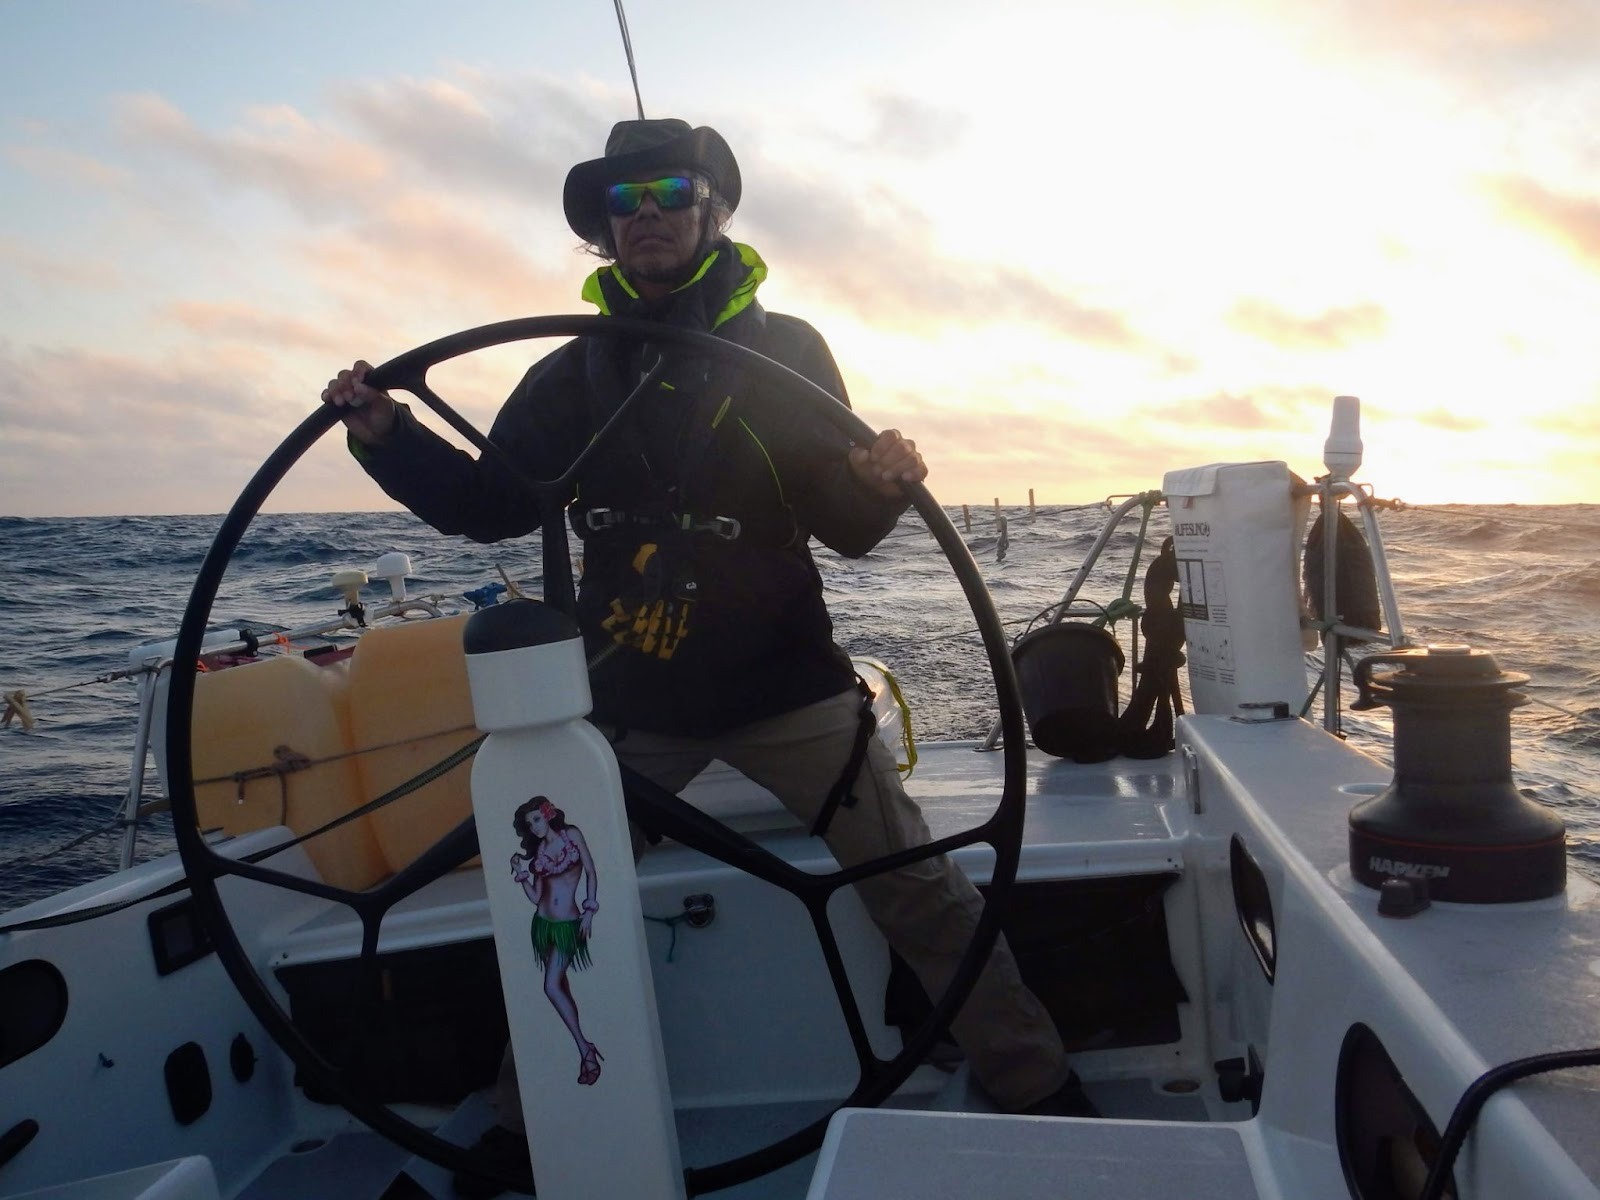 David Wang at the helm of a sailboat on the ocean with the sun setting behind him.